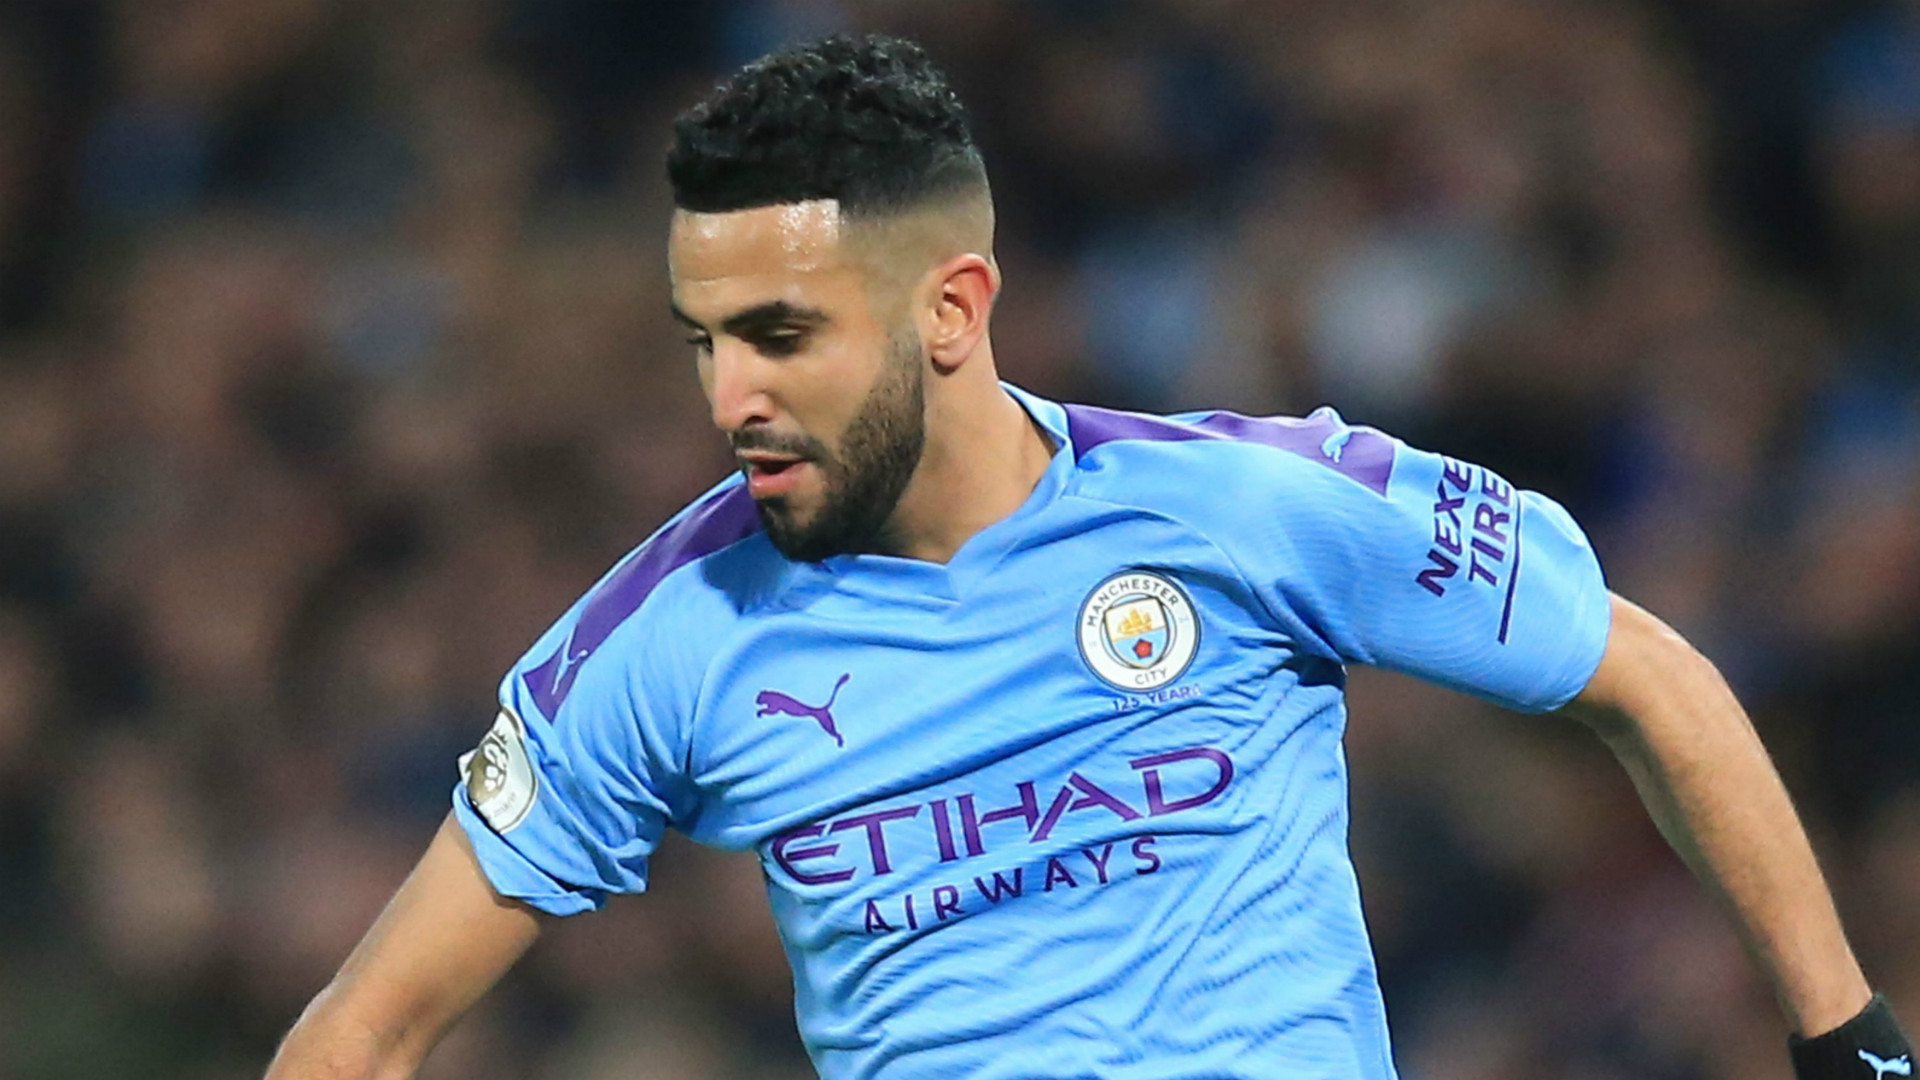 Manchester City - Burnley (5-0), Mahrez et City laminent Burnley